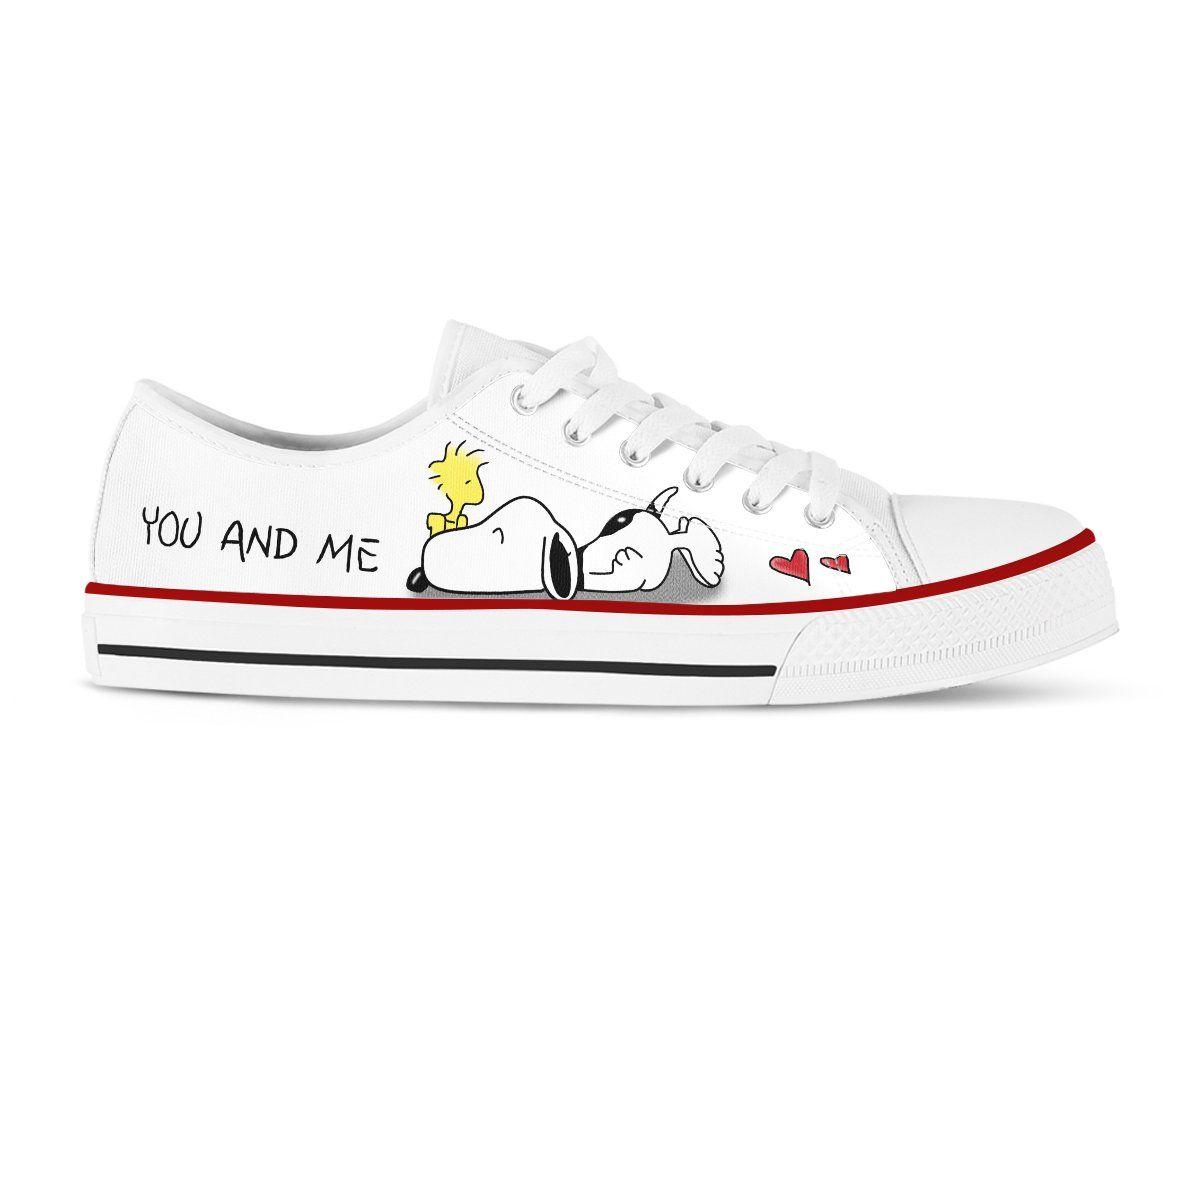 Snoopy shoes, Vans shoes fashion